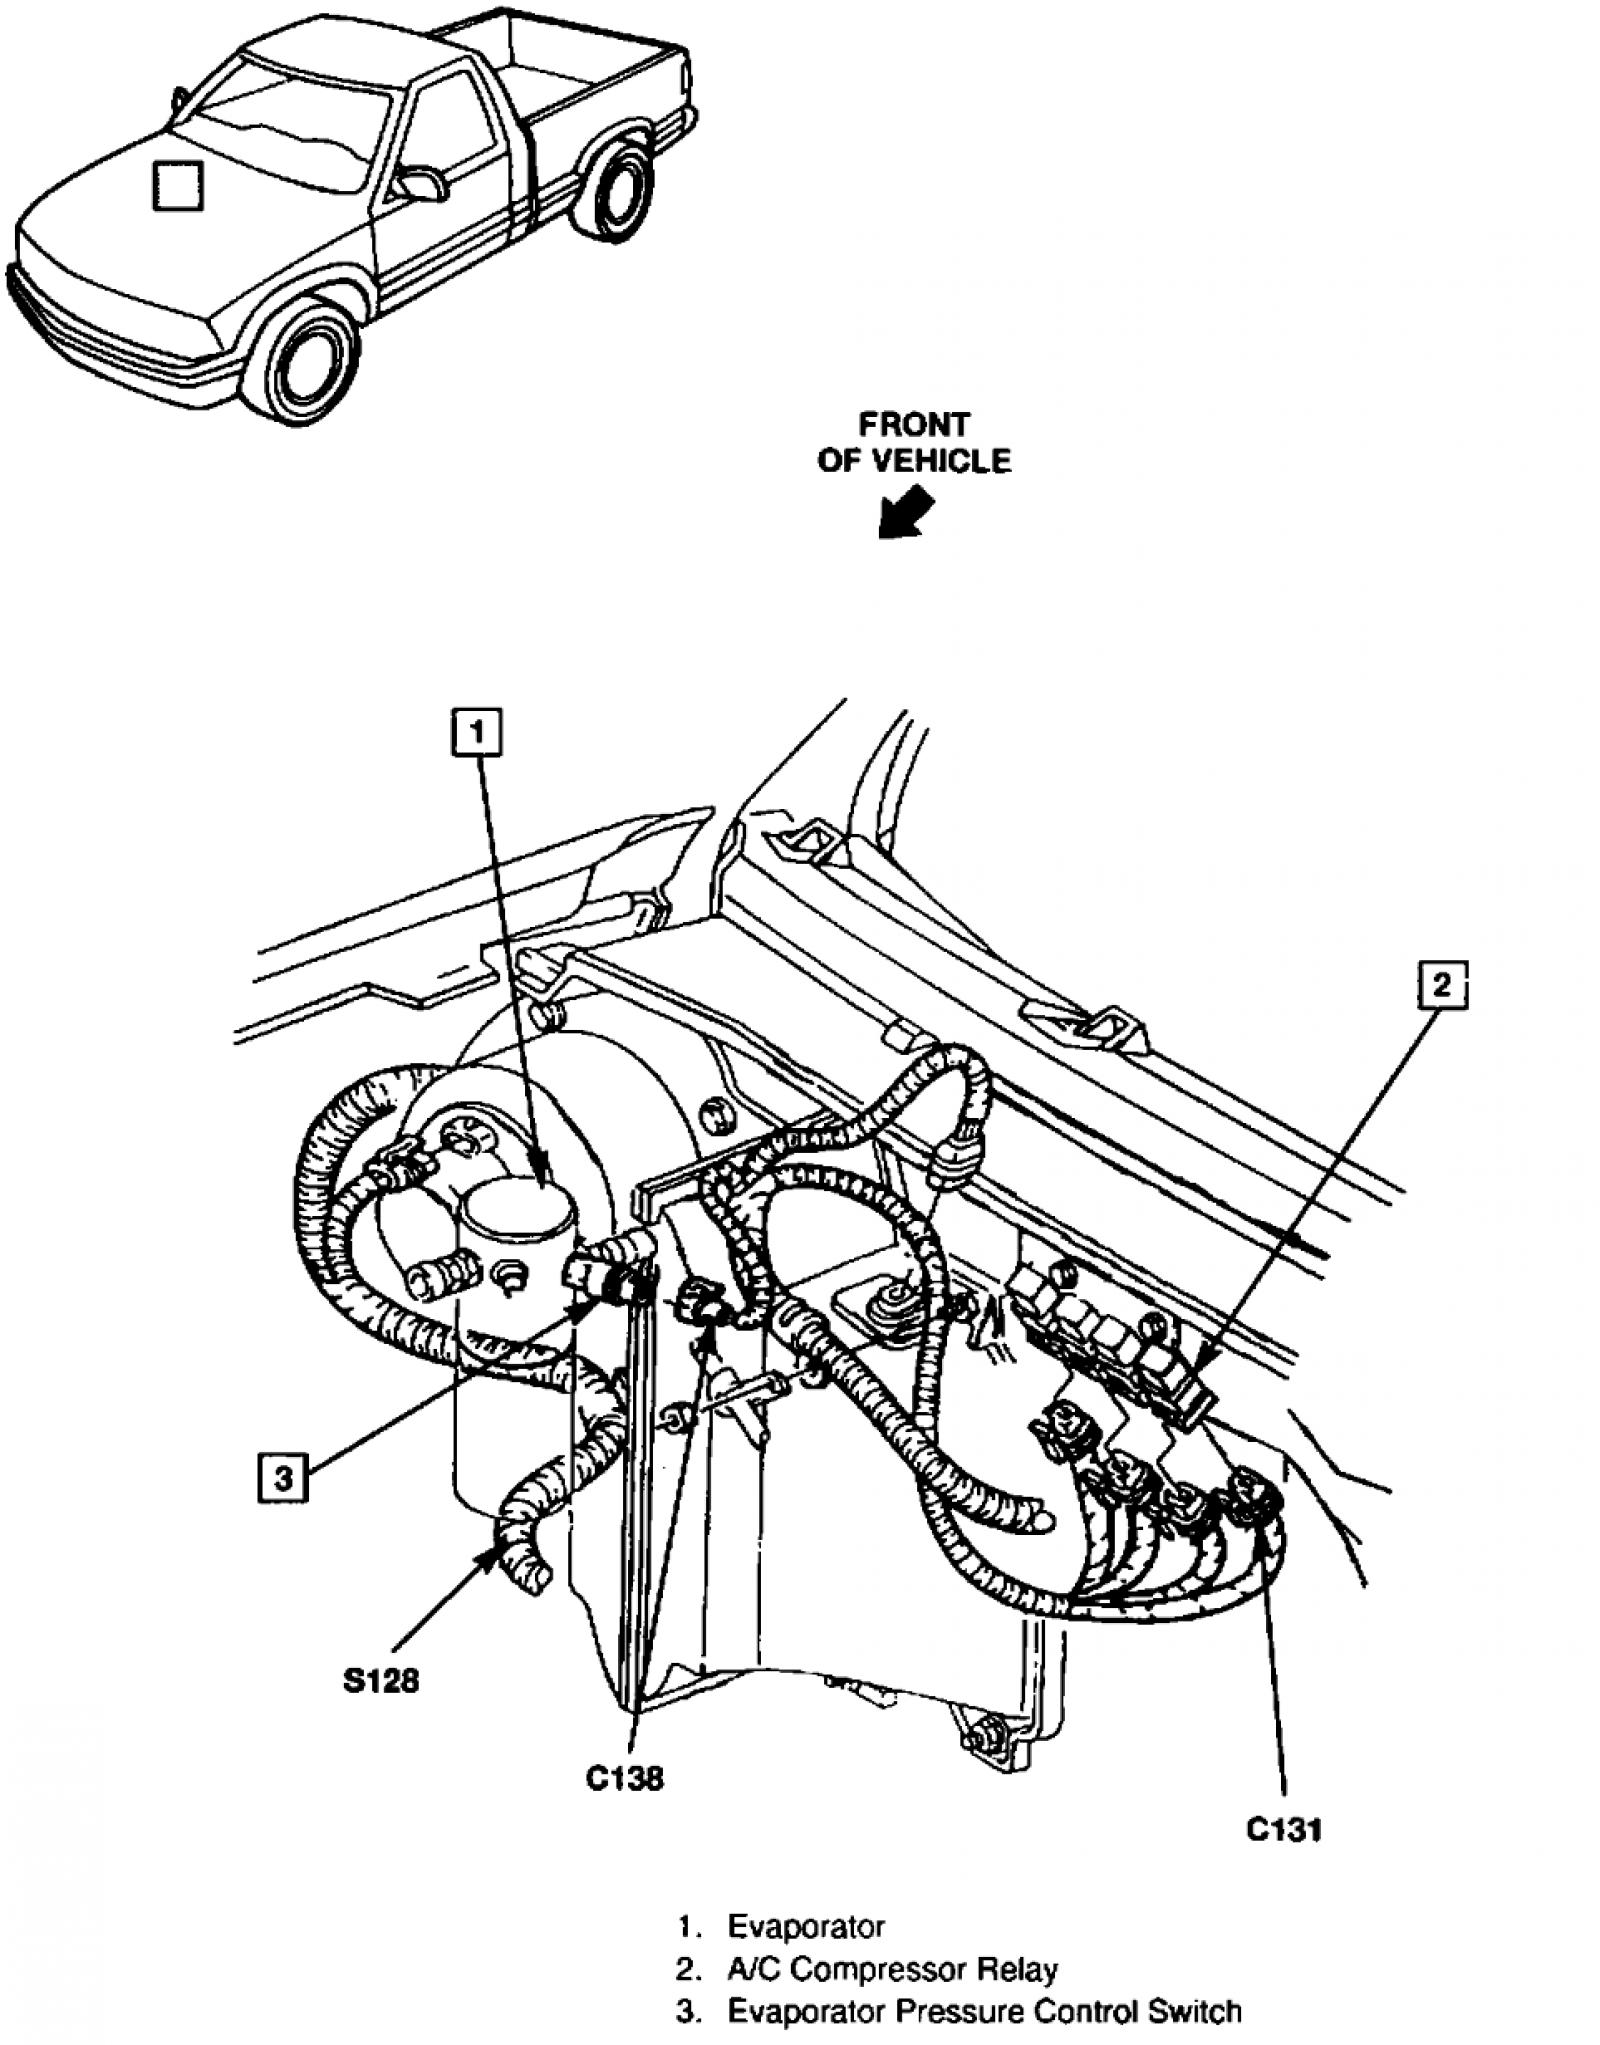 2003 Gmc Envoy Transmission Parts Diagram - Basic Guide Wiring Diagram •